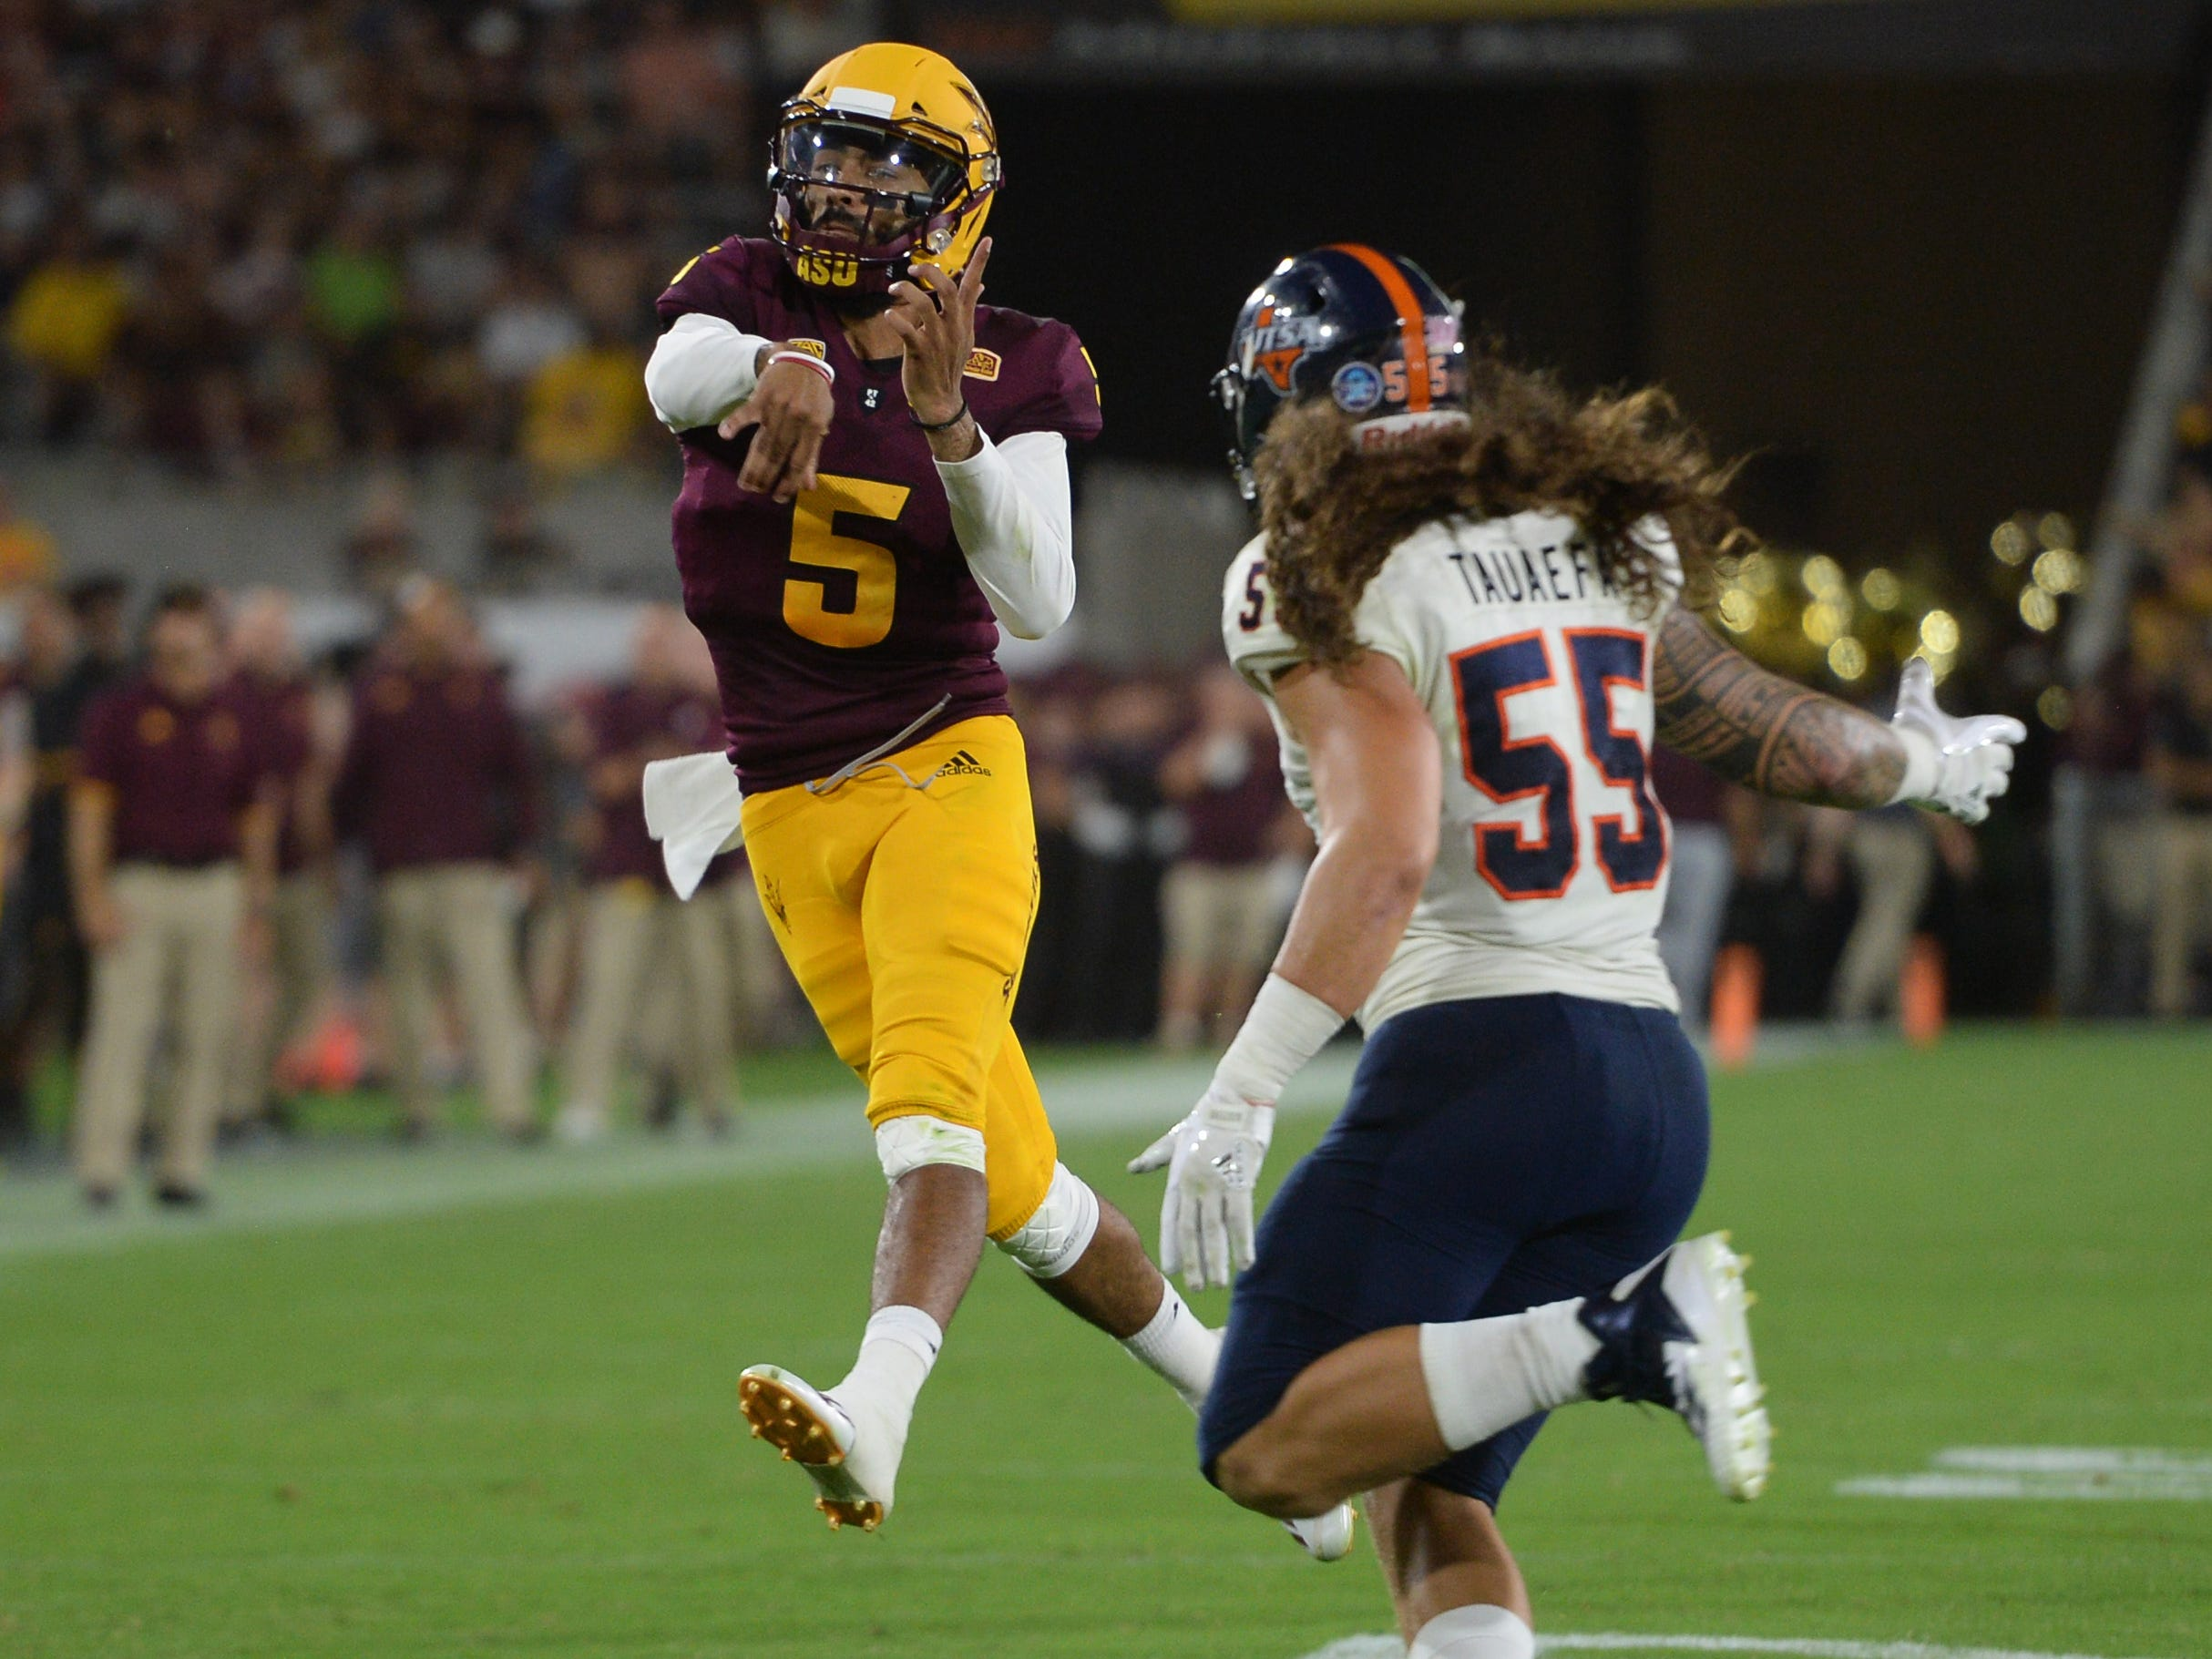 Sep 1, 2018; Tempe, AZ, USA; Arizona State Sun Devils quarterback Manny Wilkins (5) throws a touchdown pass against the UTSA Roadrunners during the first half at Sun Devil Stadium.